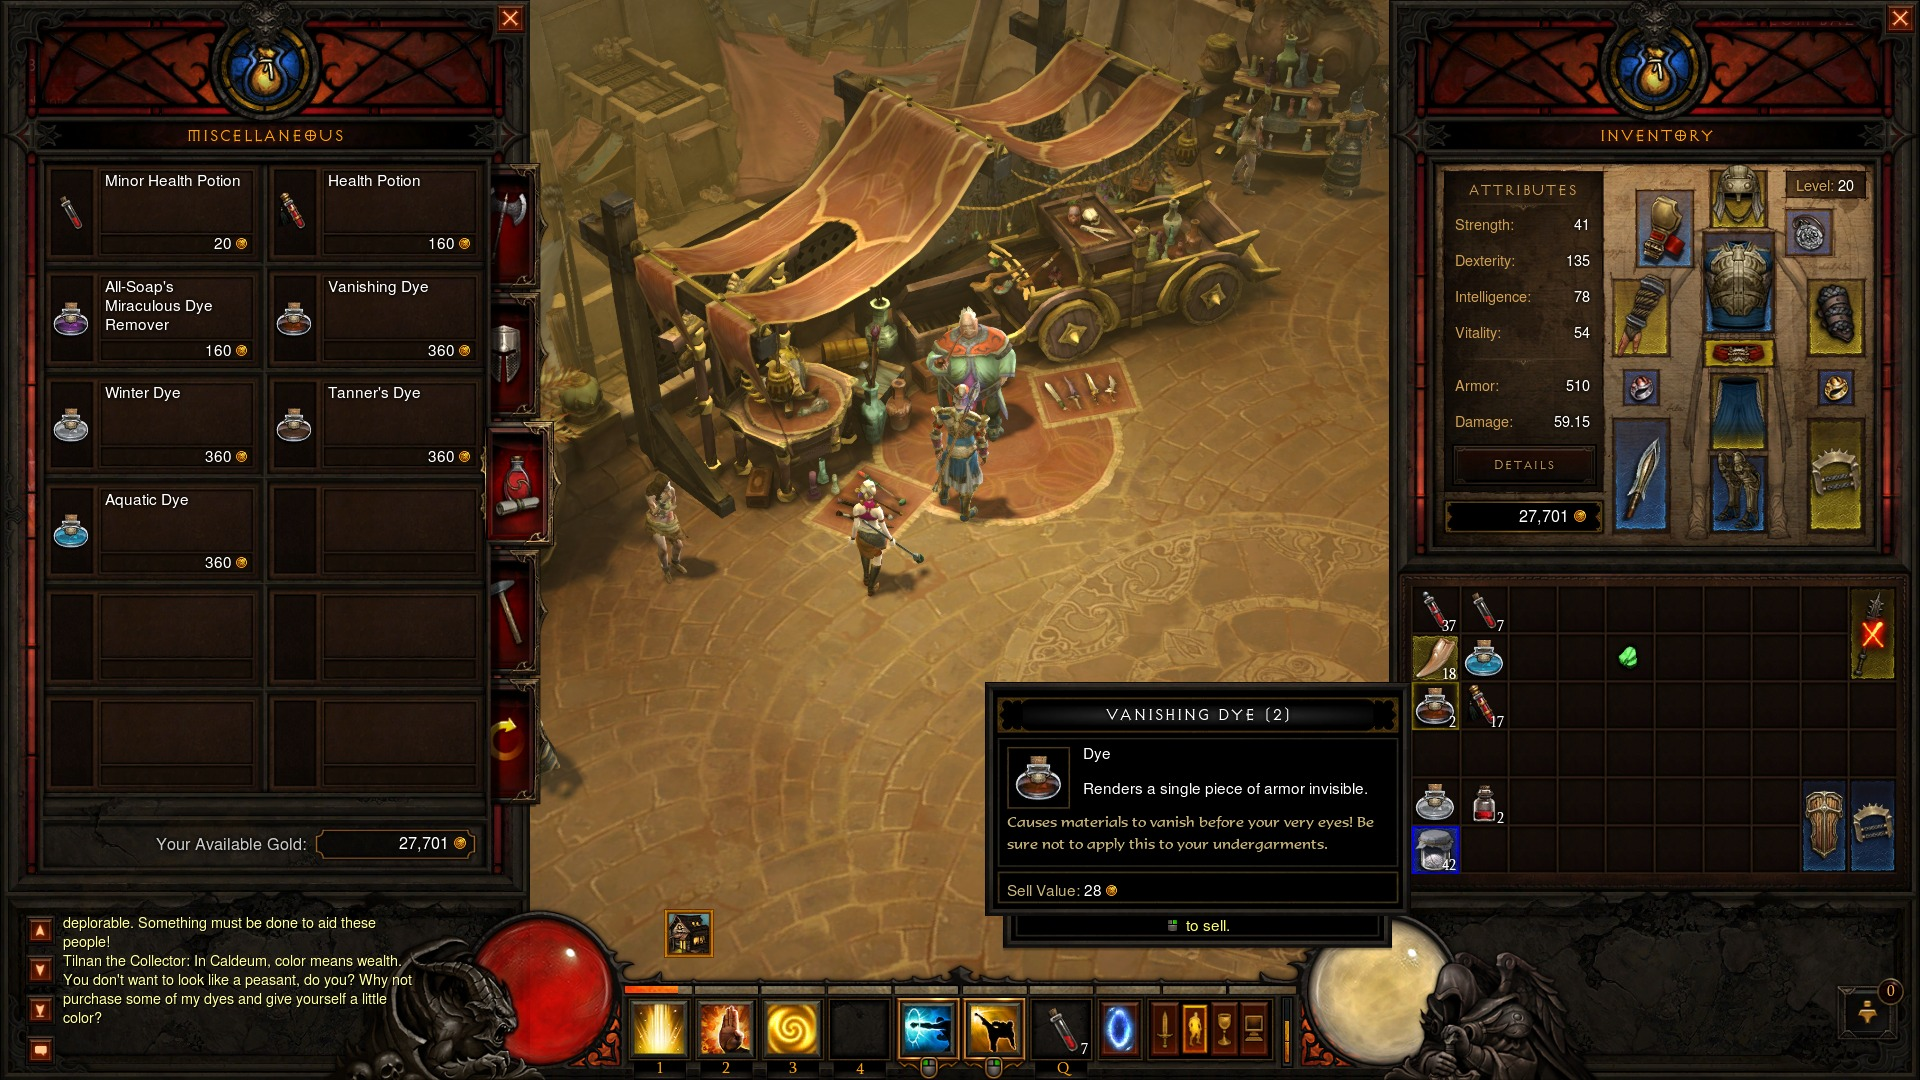 an analysis of the game diablo 3 Find product information, ratings and reviews for diablo iii: reaper of souls expansion set pc game online on targetcom.